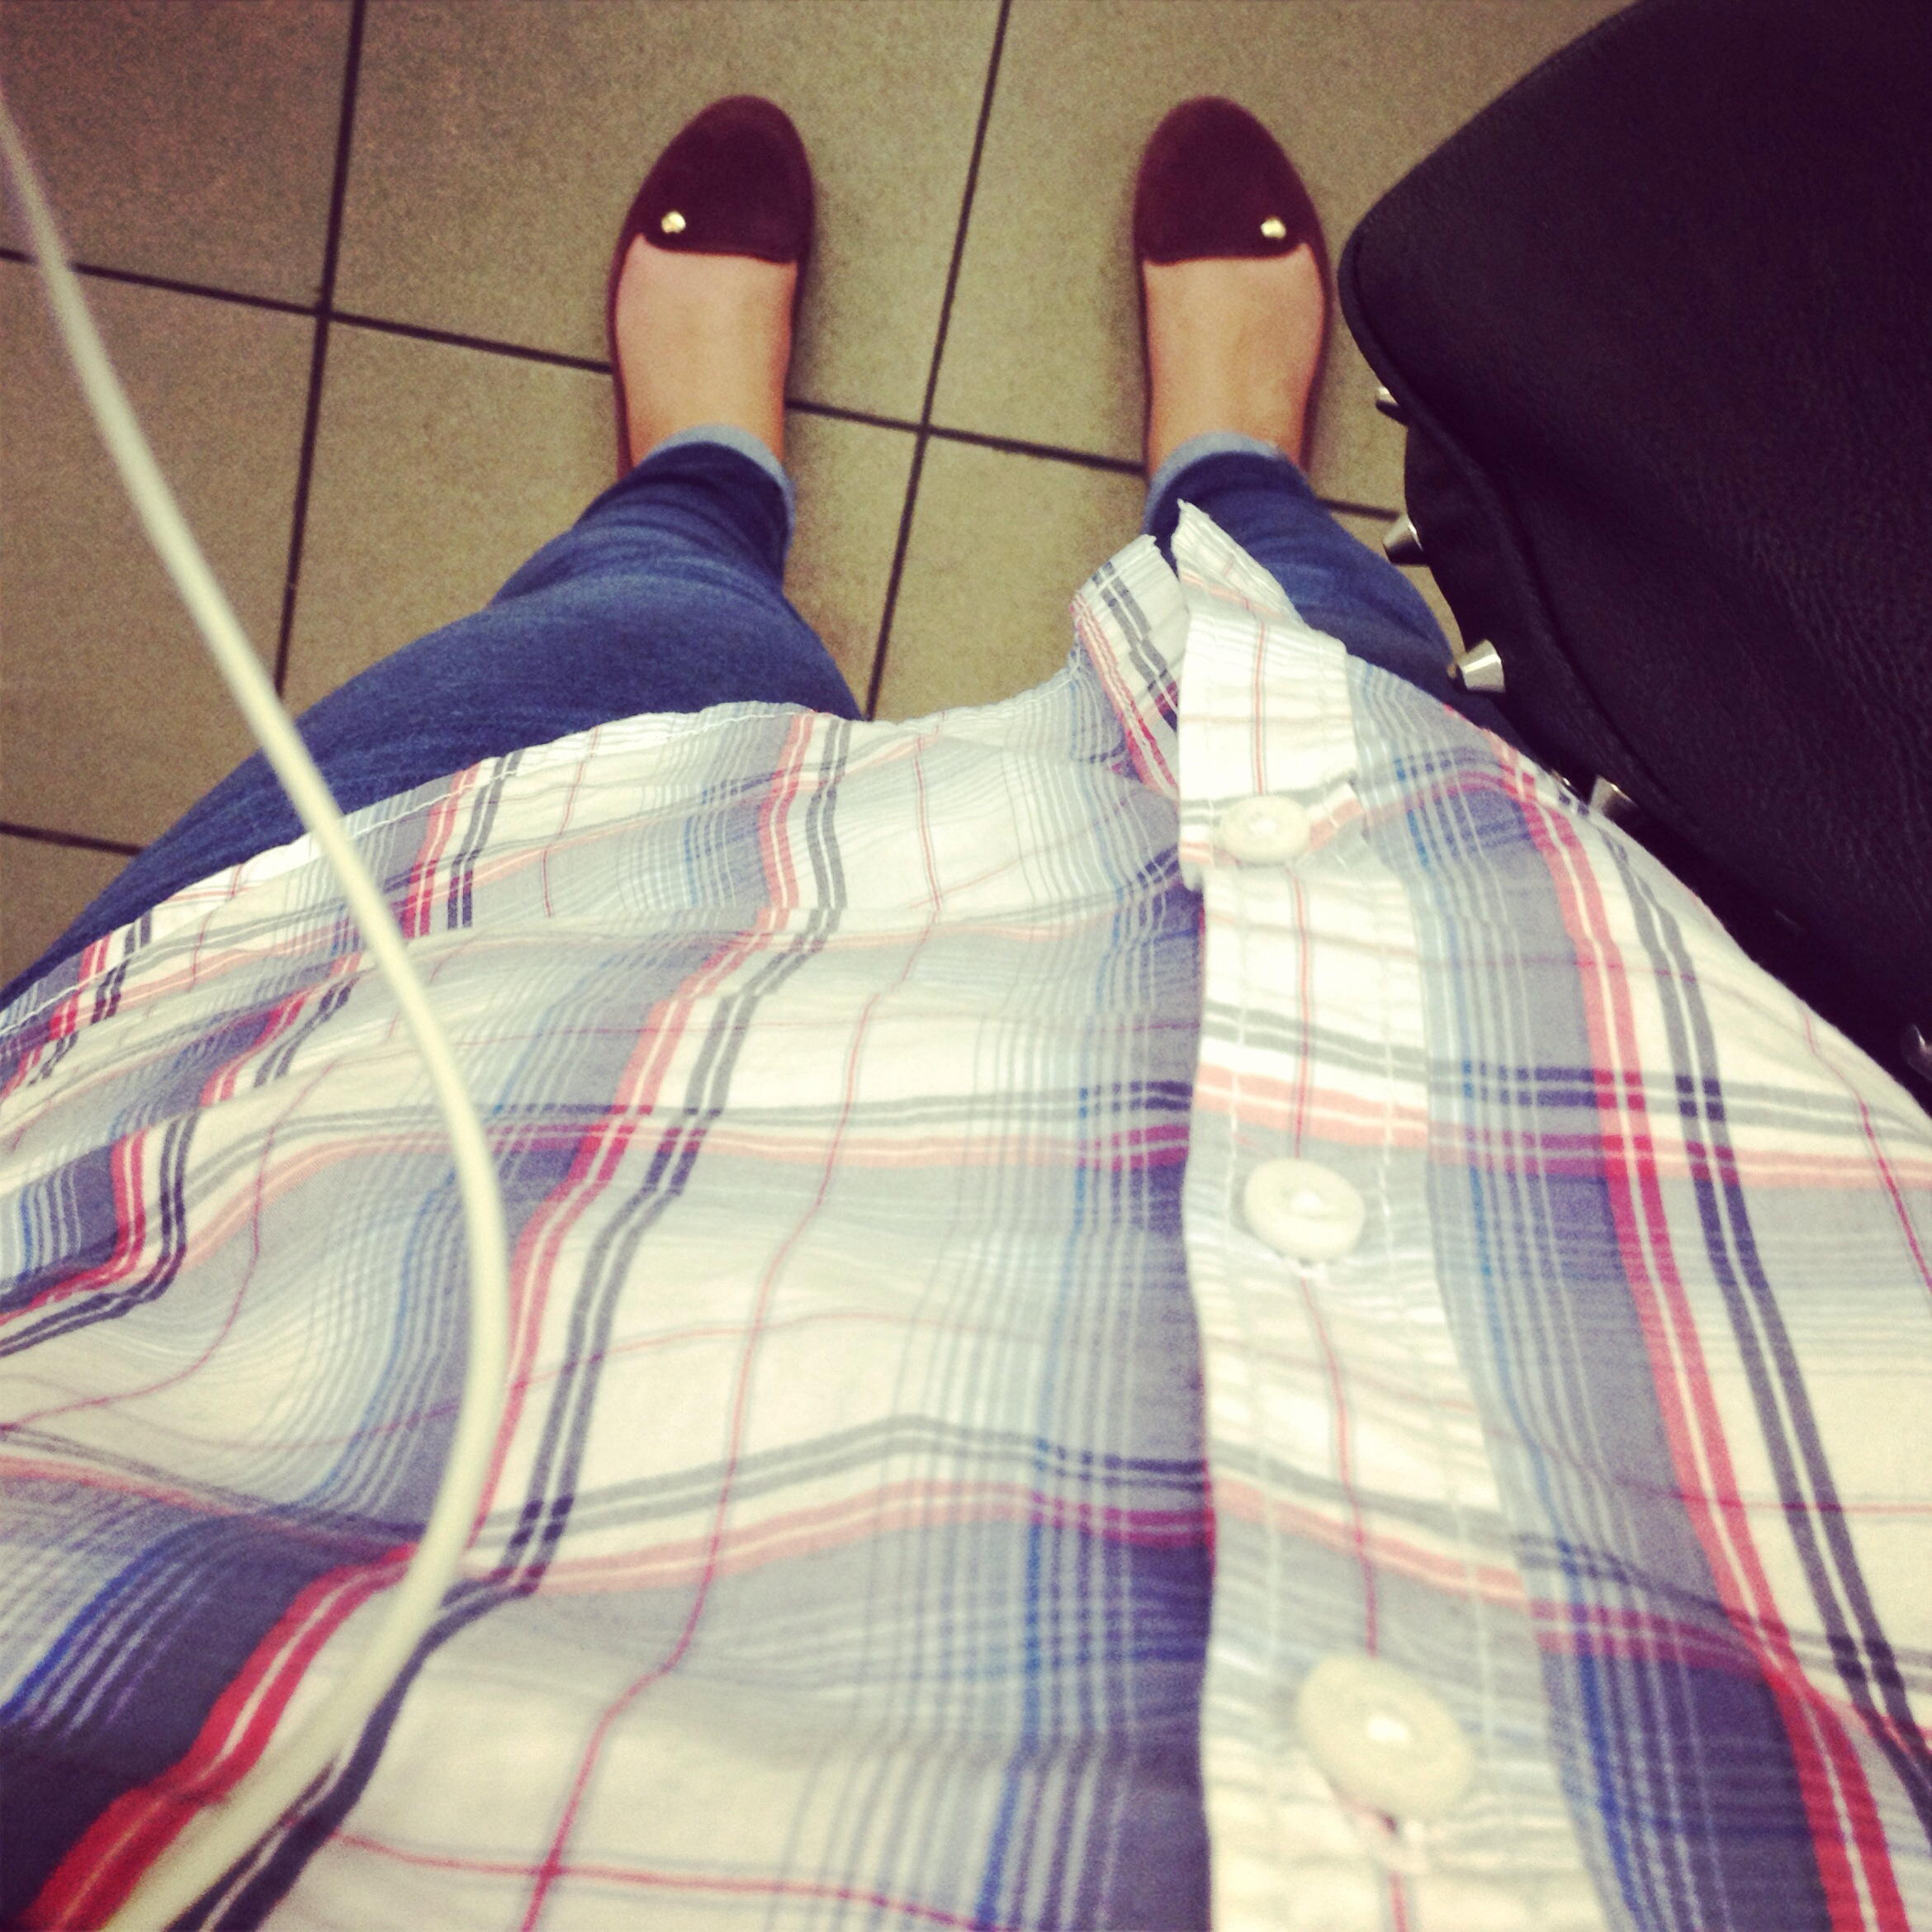 Check Shirt, Topshop Jame Jeans, Red Slipper Shoes